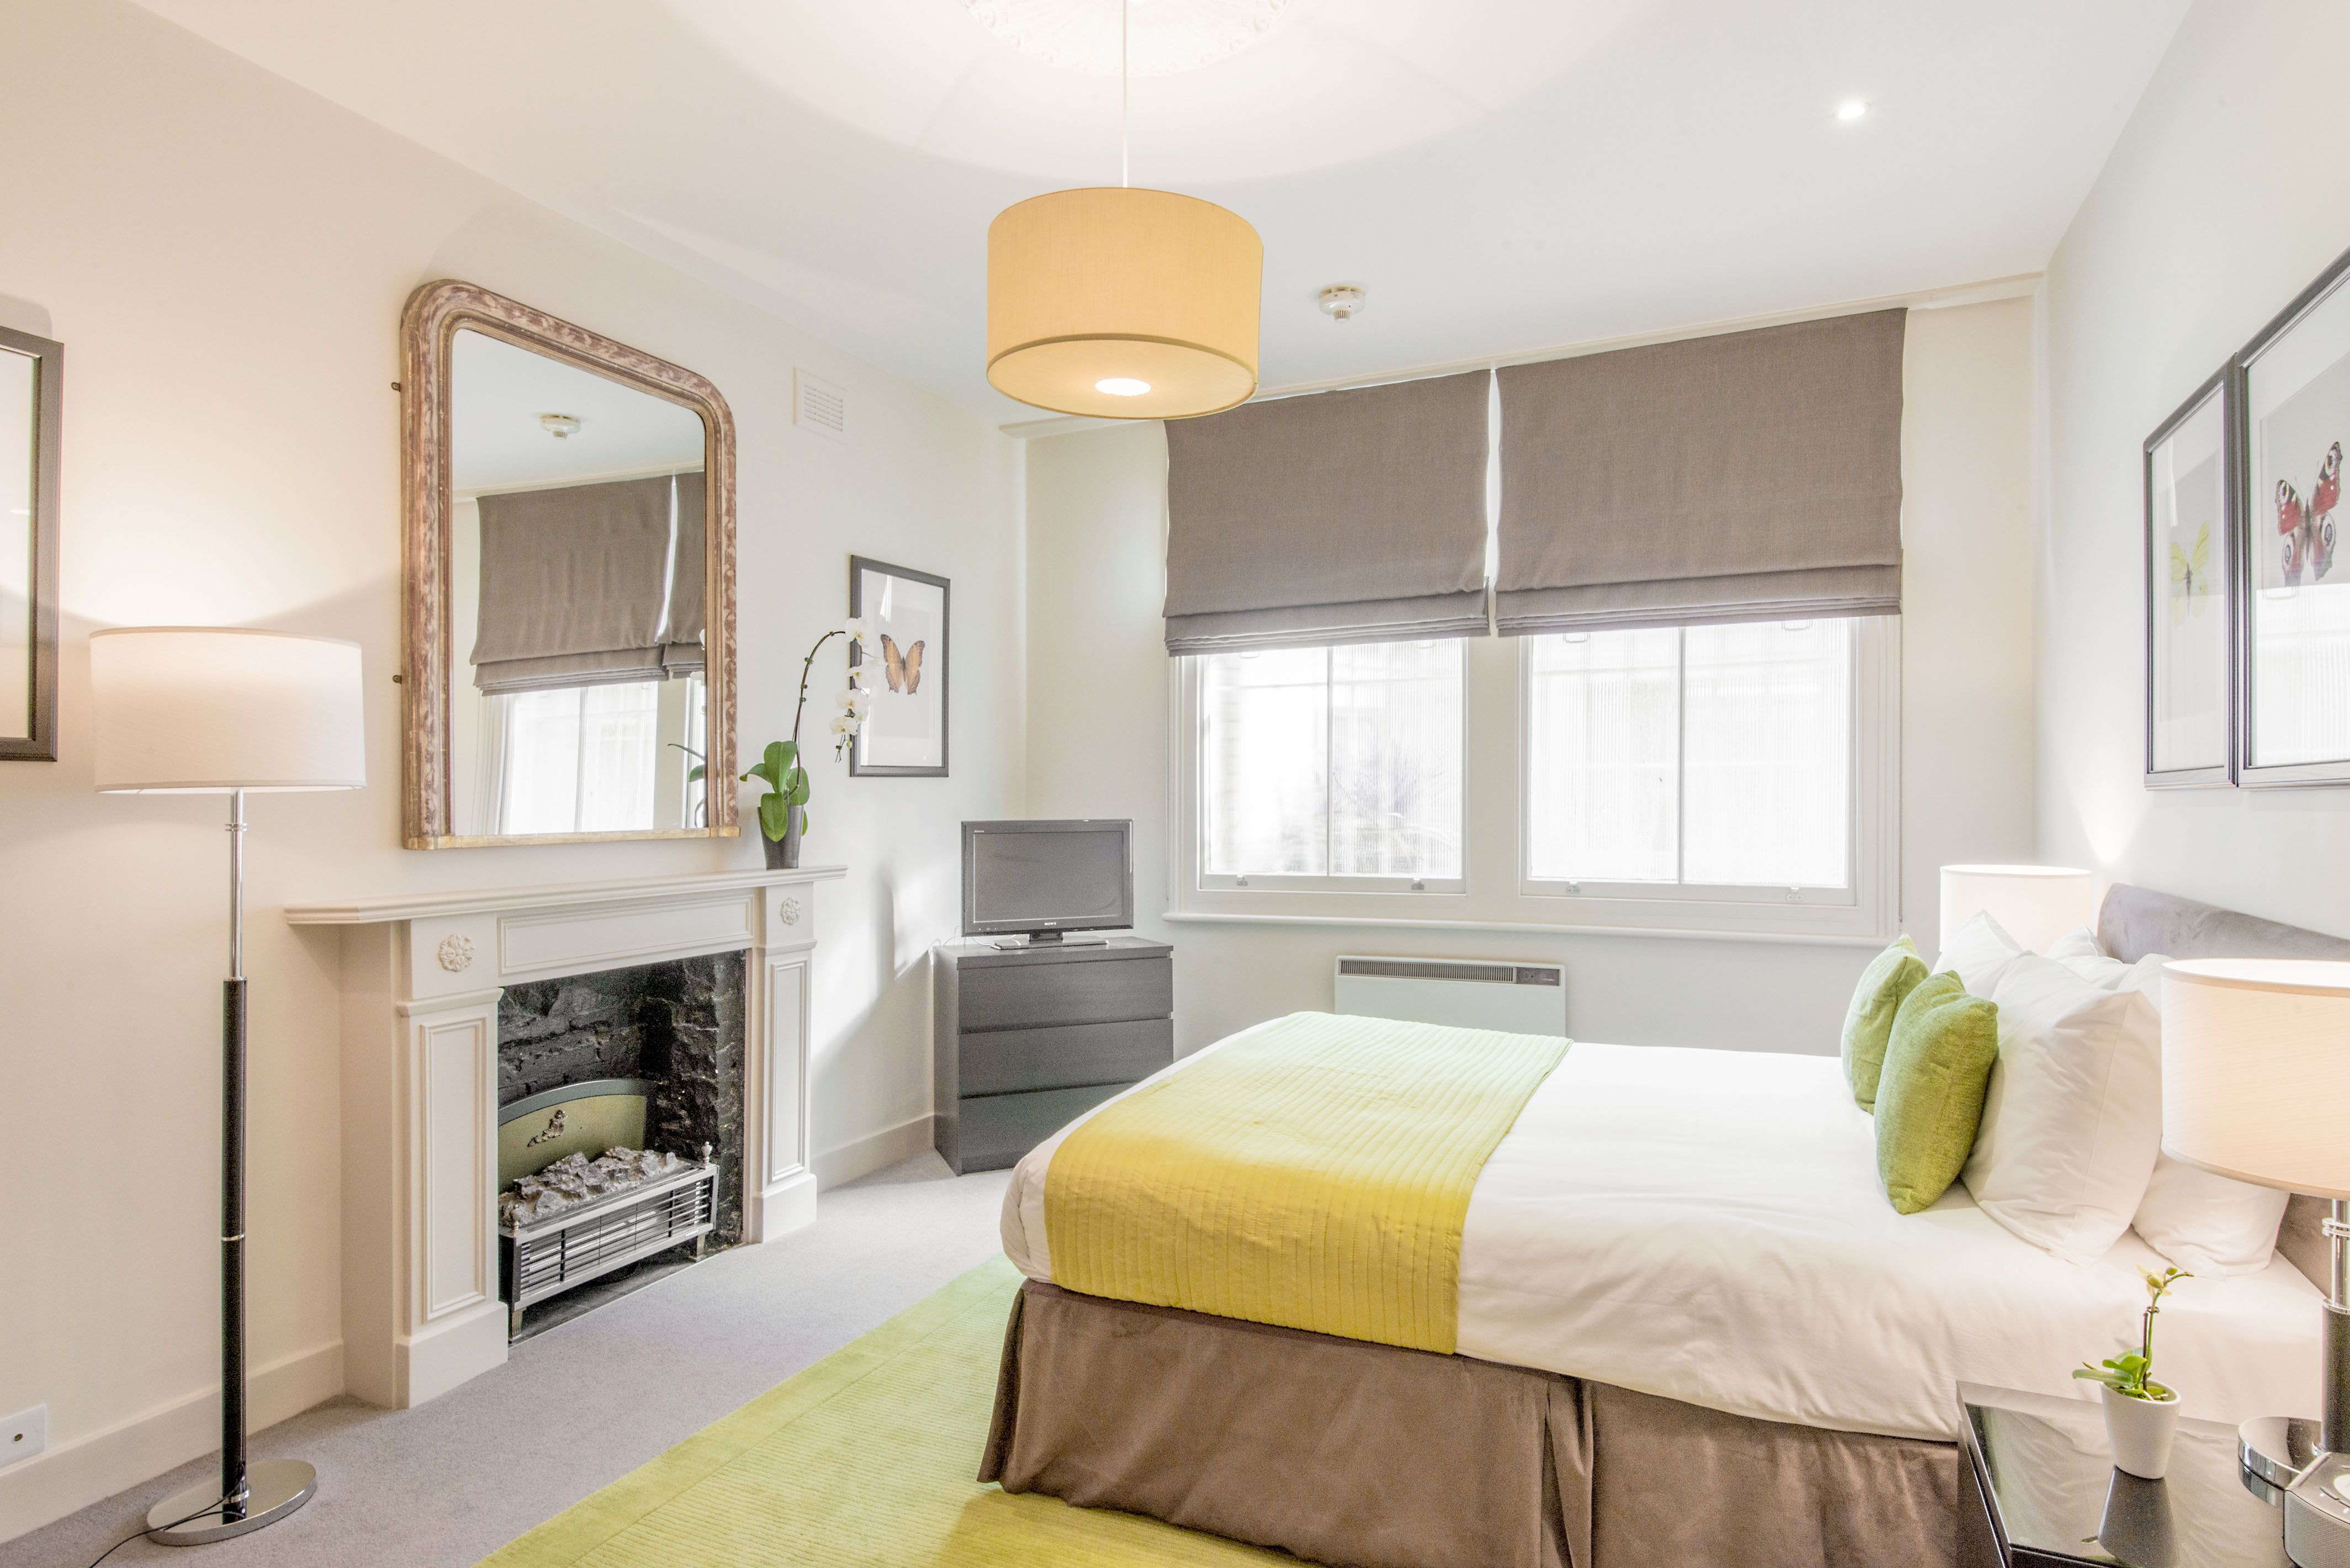 The Apartments Offer A Selection Of High Quality Serviced London Apartments  In Chelsea And Marylebone For Business Travel Or Short Stay Holidays.